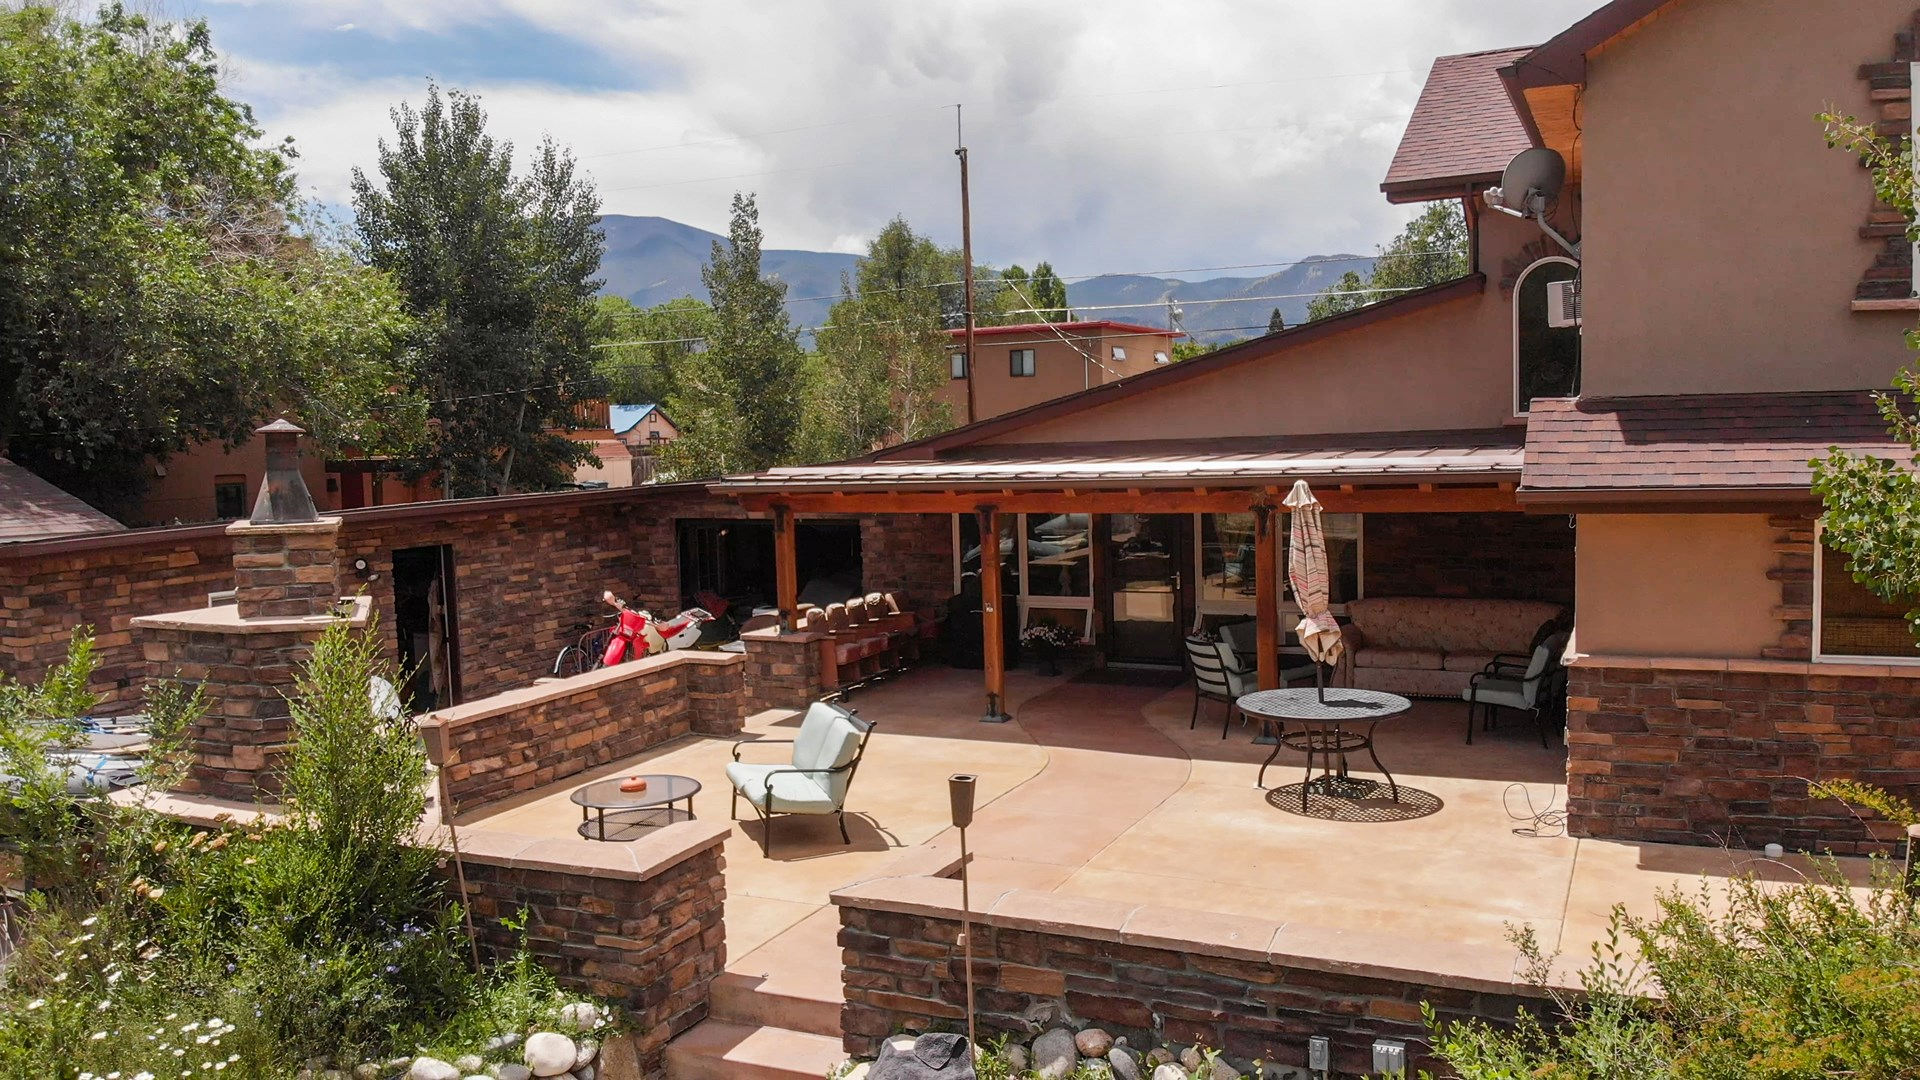 Downtown Dream Home In Salida, Colorado For Sale